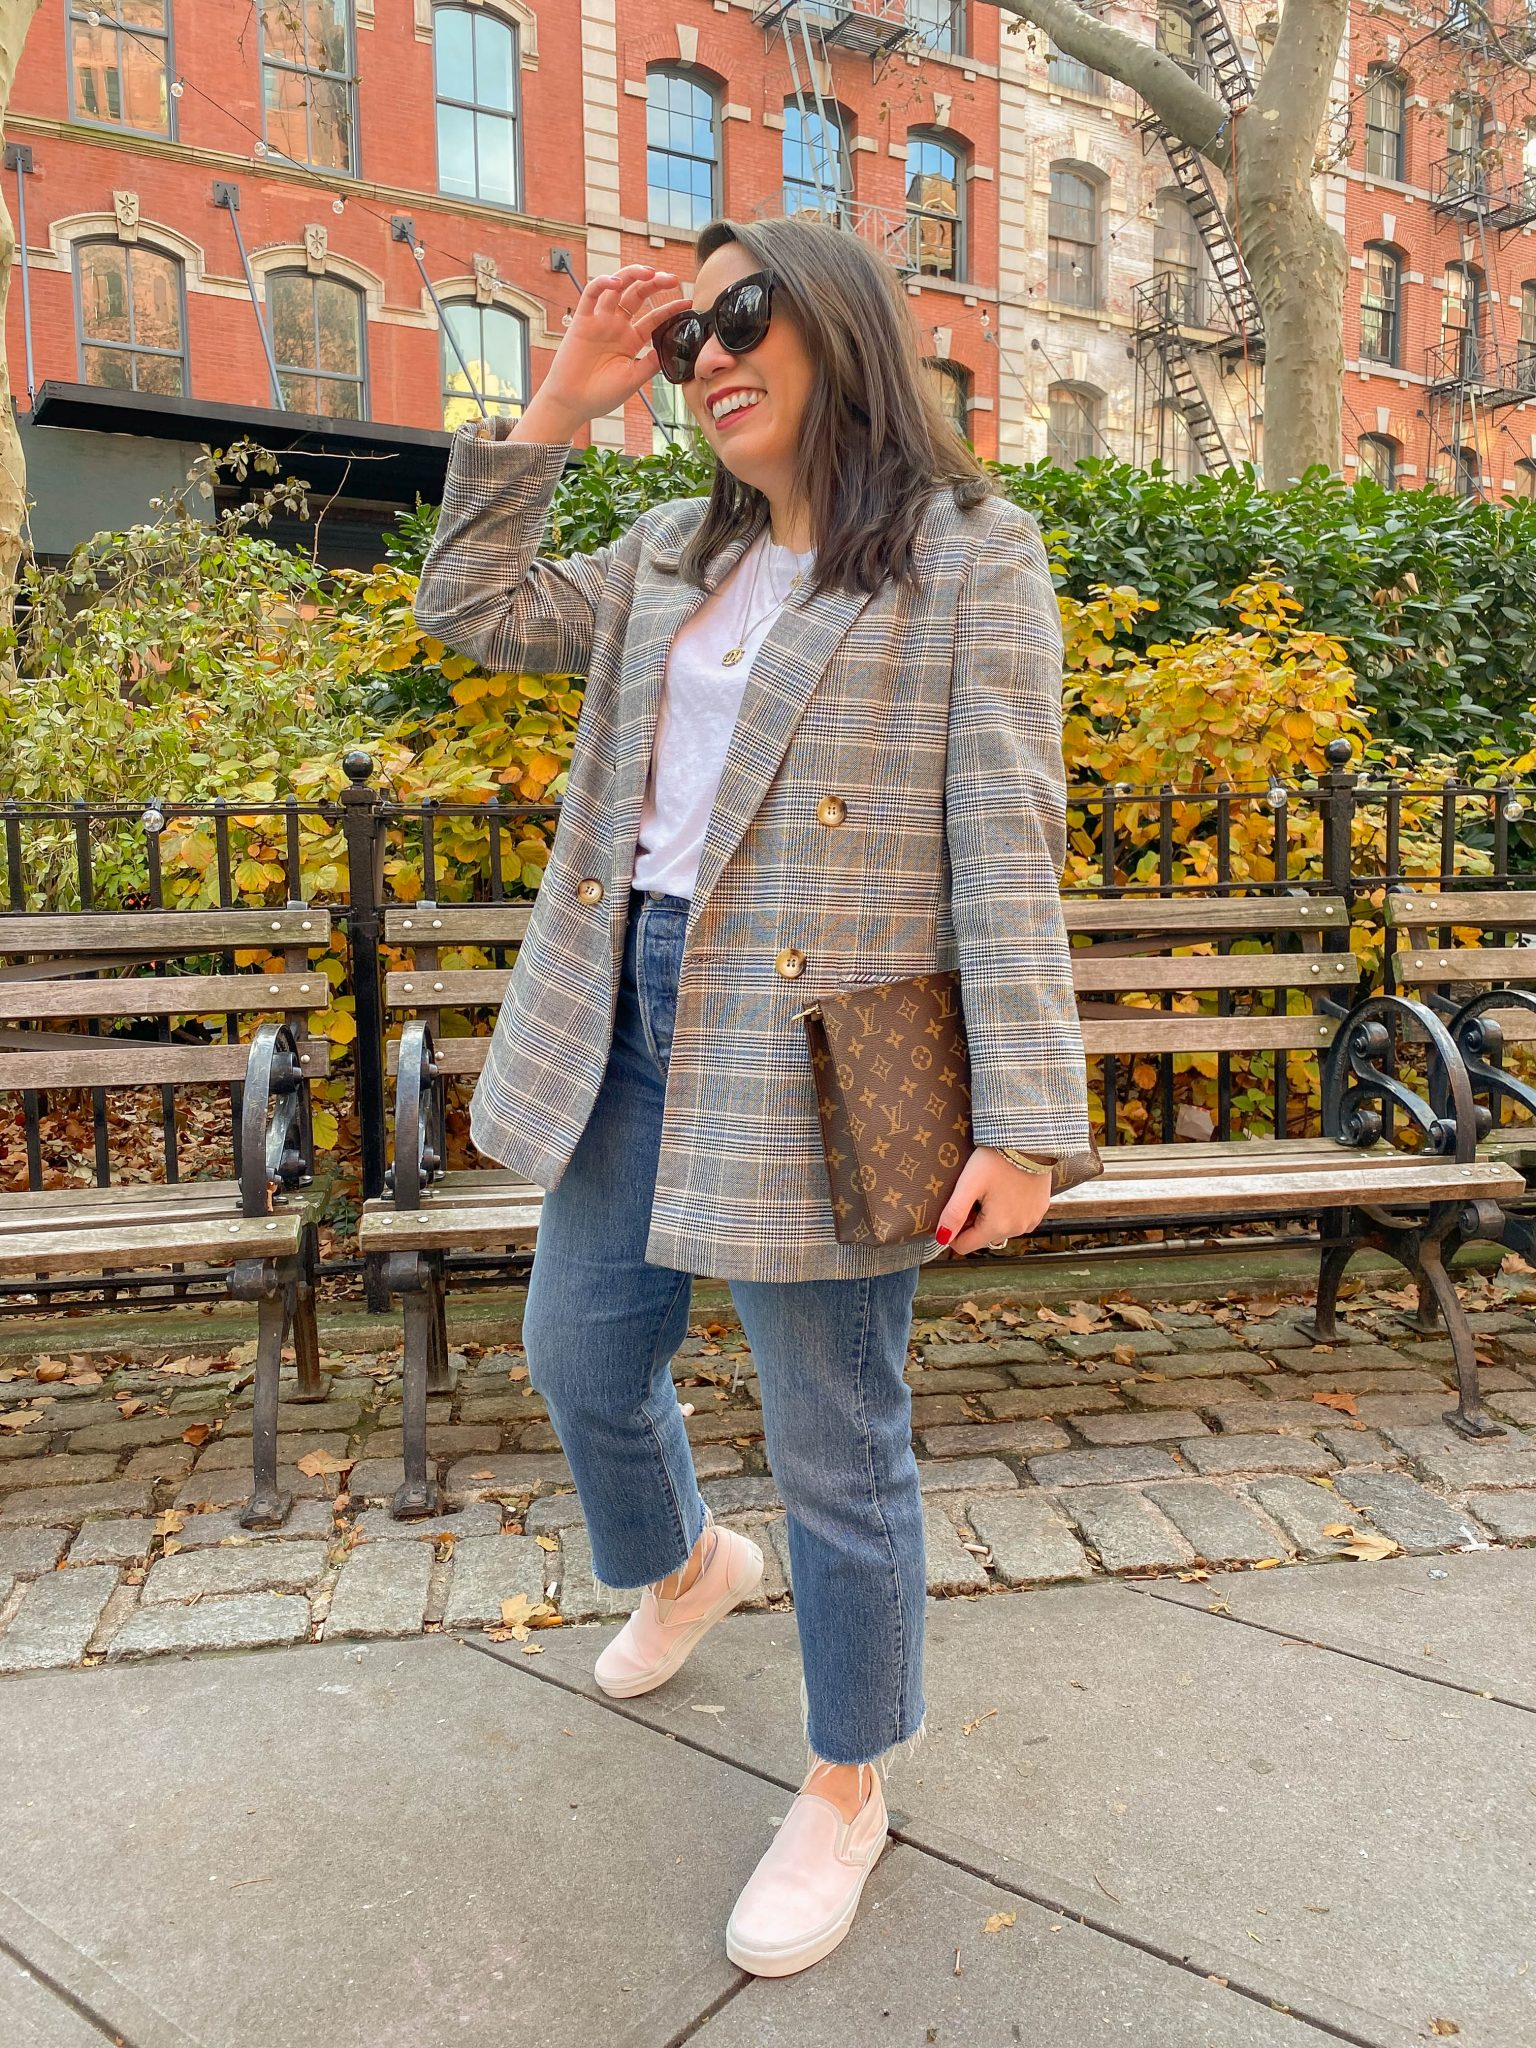 5 Daily Habits to Establish in 2021 by Basically A Mess (image of a woman in NYC with trendy plaid blazer and Louis Vuitton toiletry pouch)